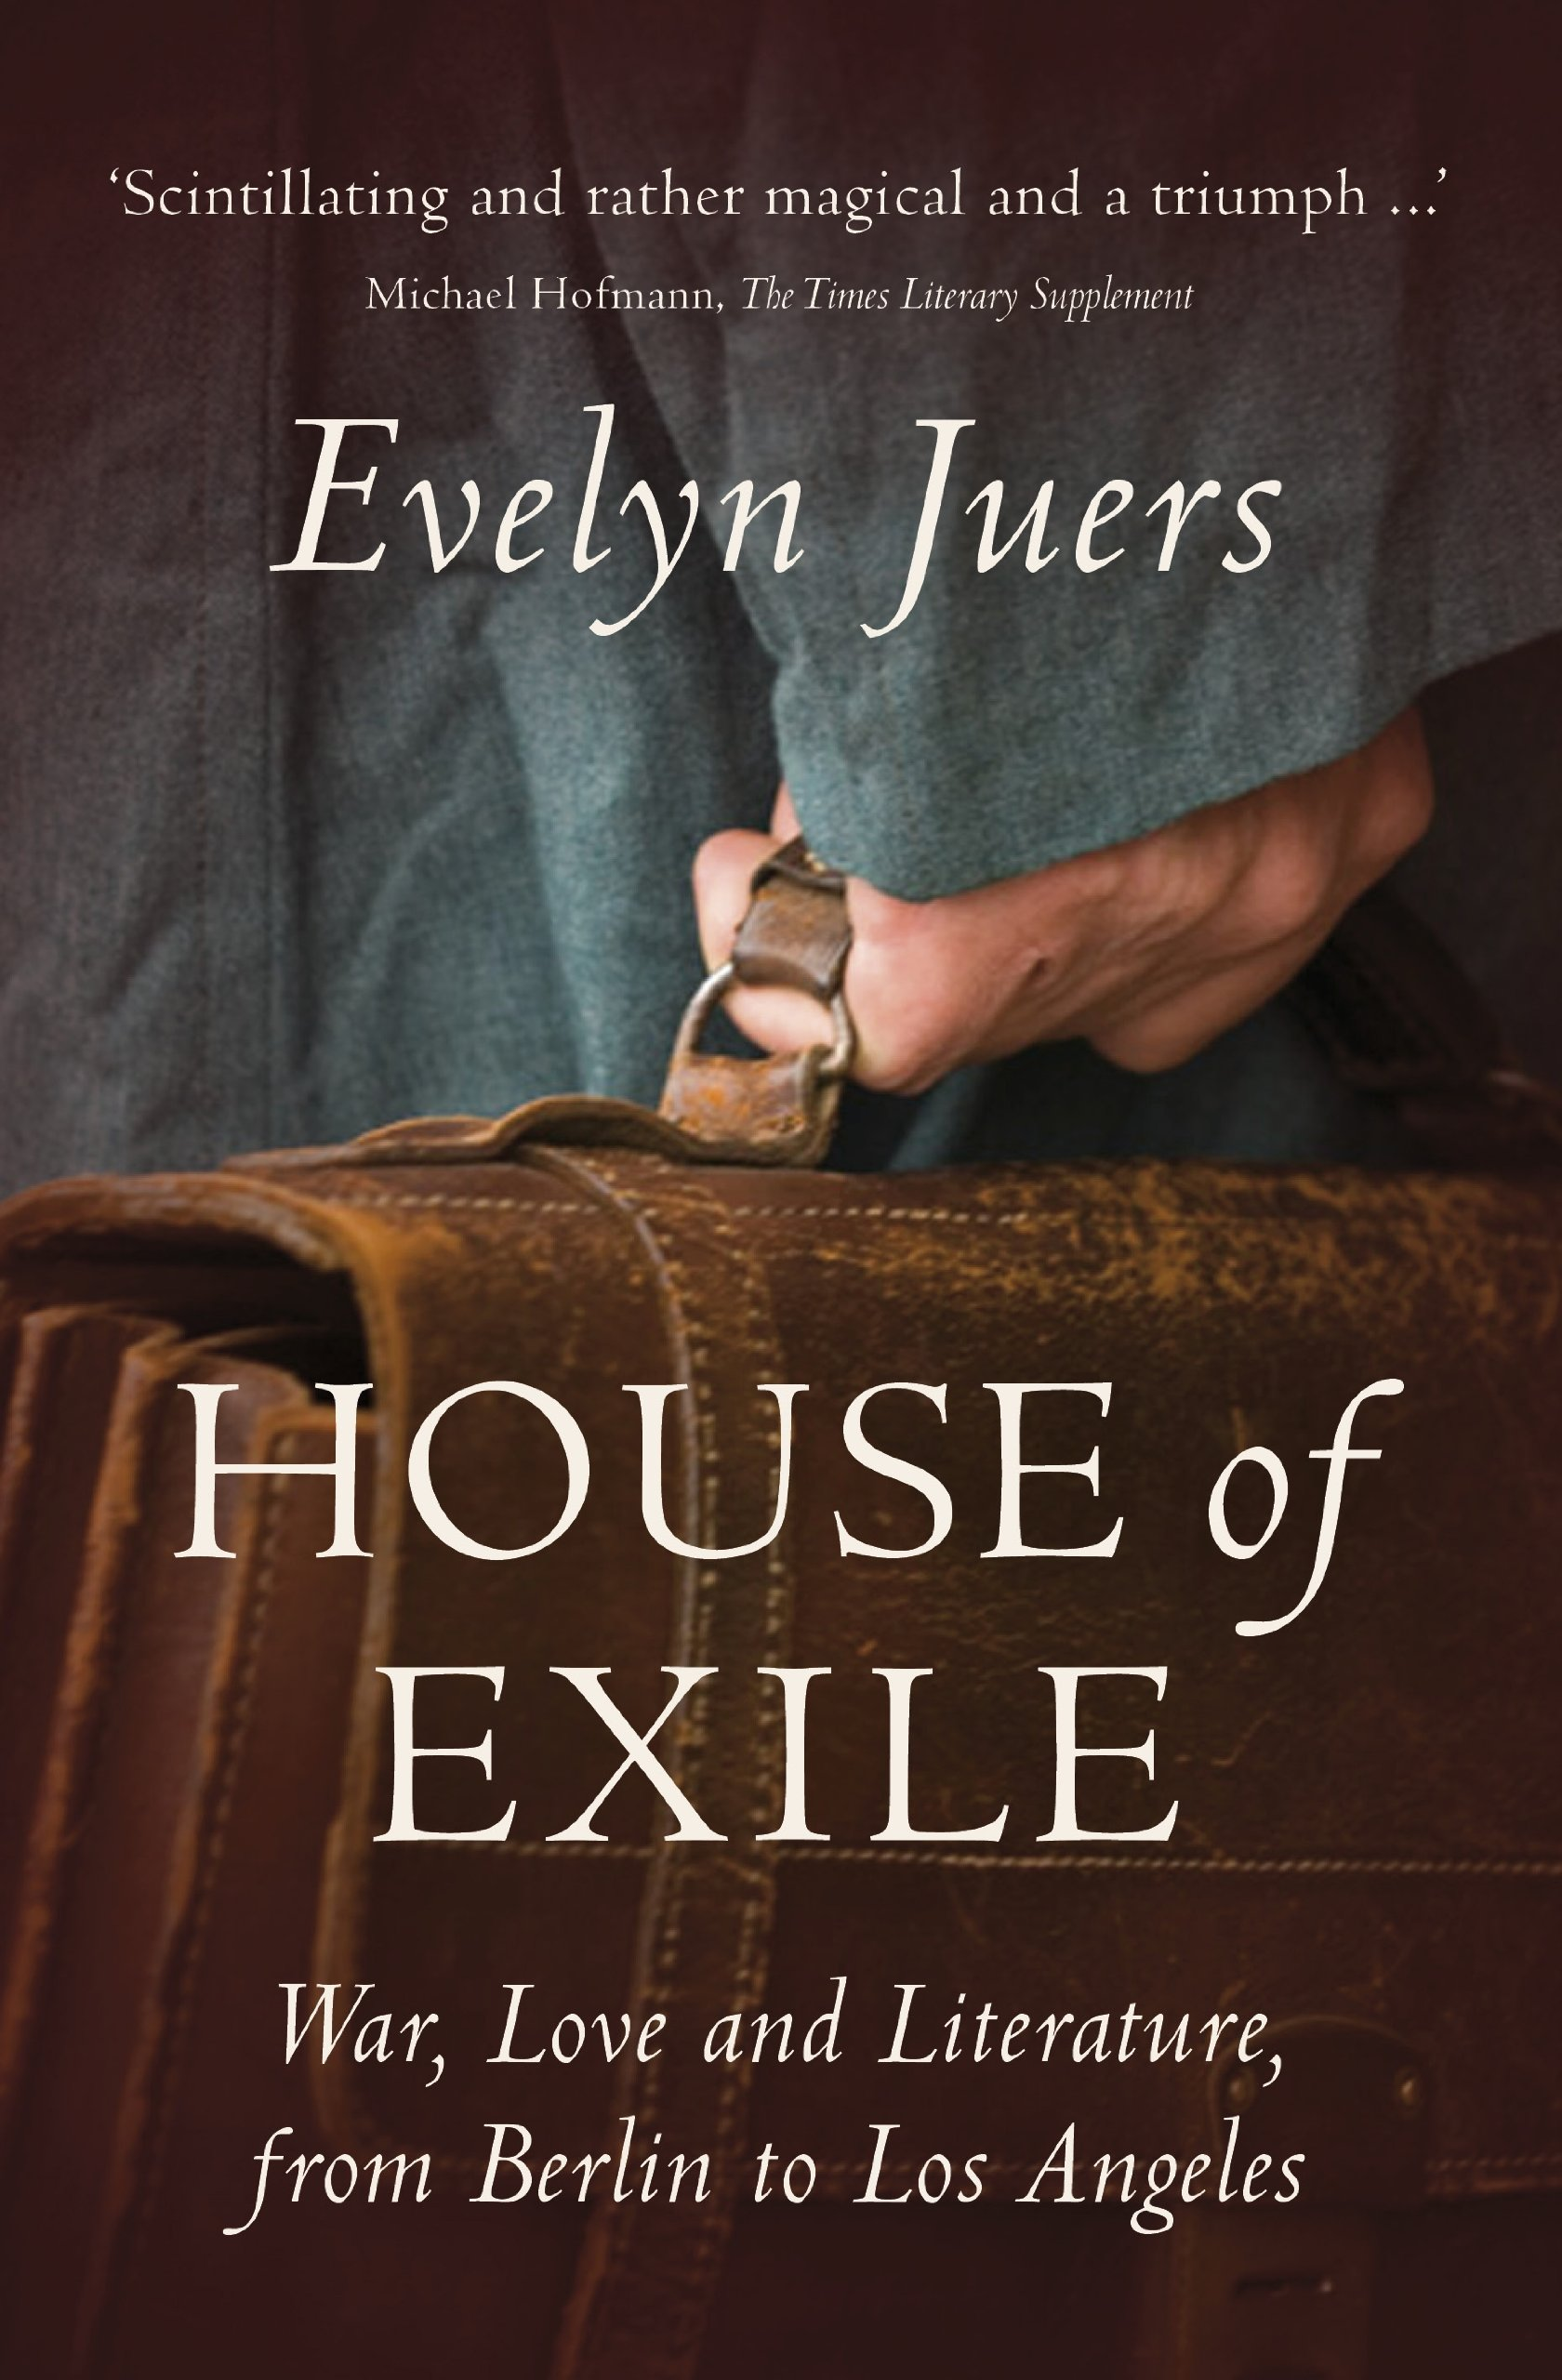 House of exile war love and literature from berlin to los angeles evelyn juers 9781846144615 amazon com books